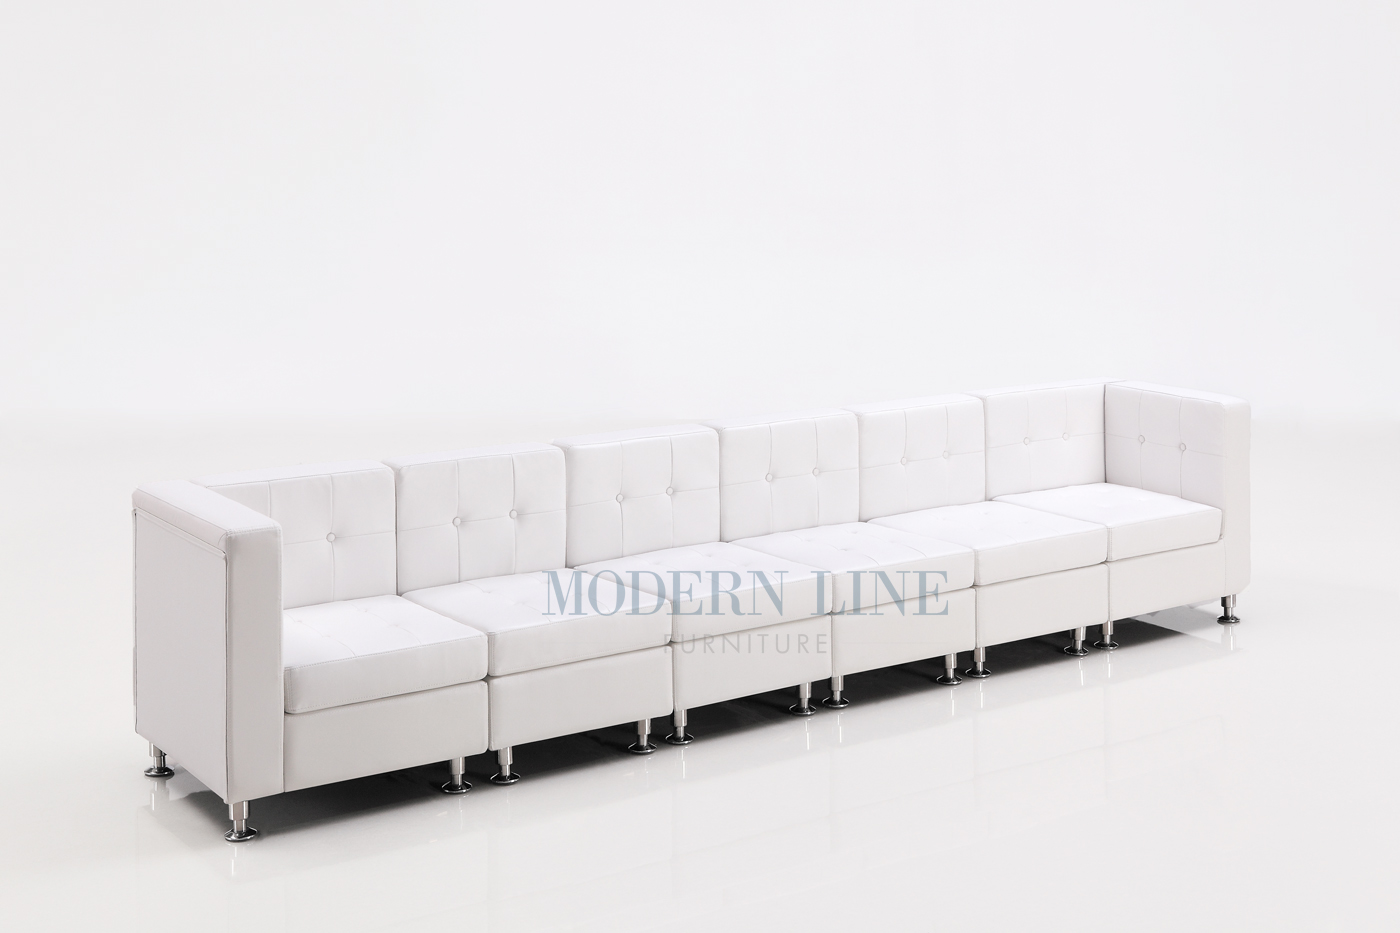 modern line furniture  commercial furniture  custom made  - modern line furniture  commercial furniture  custom made furniture seating collection    modular white leather extra long sofa